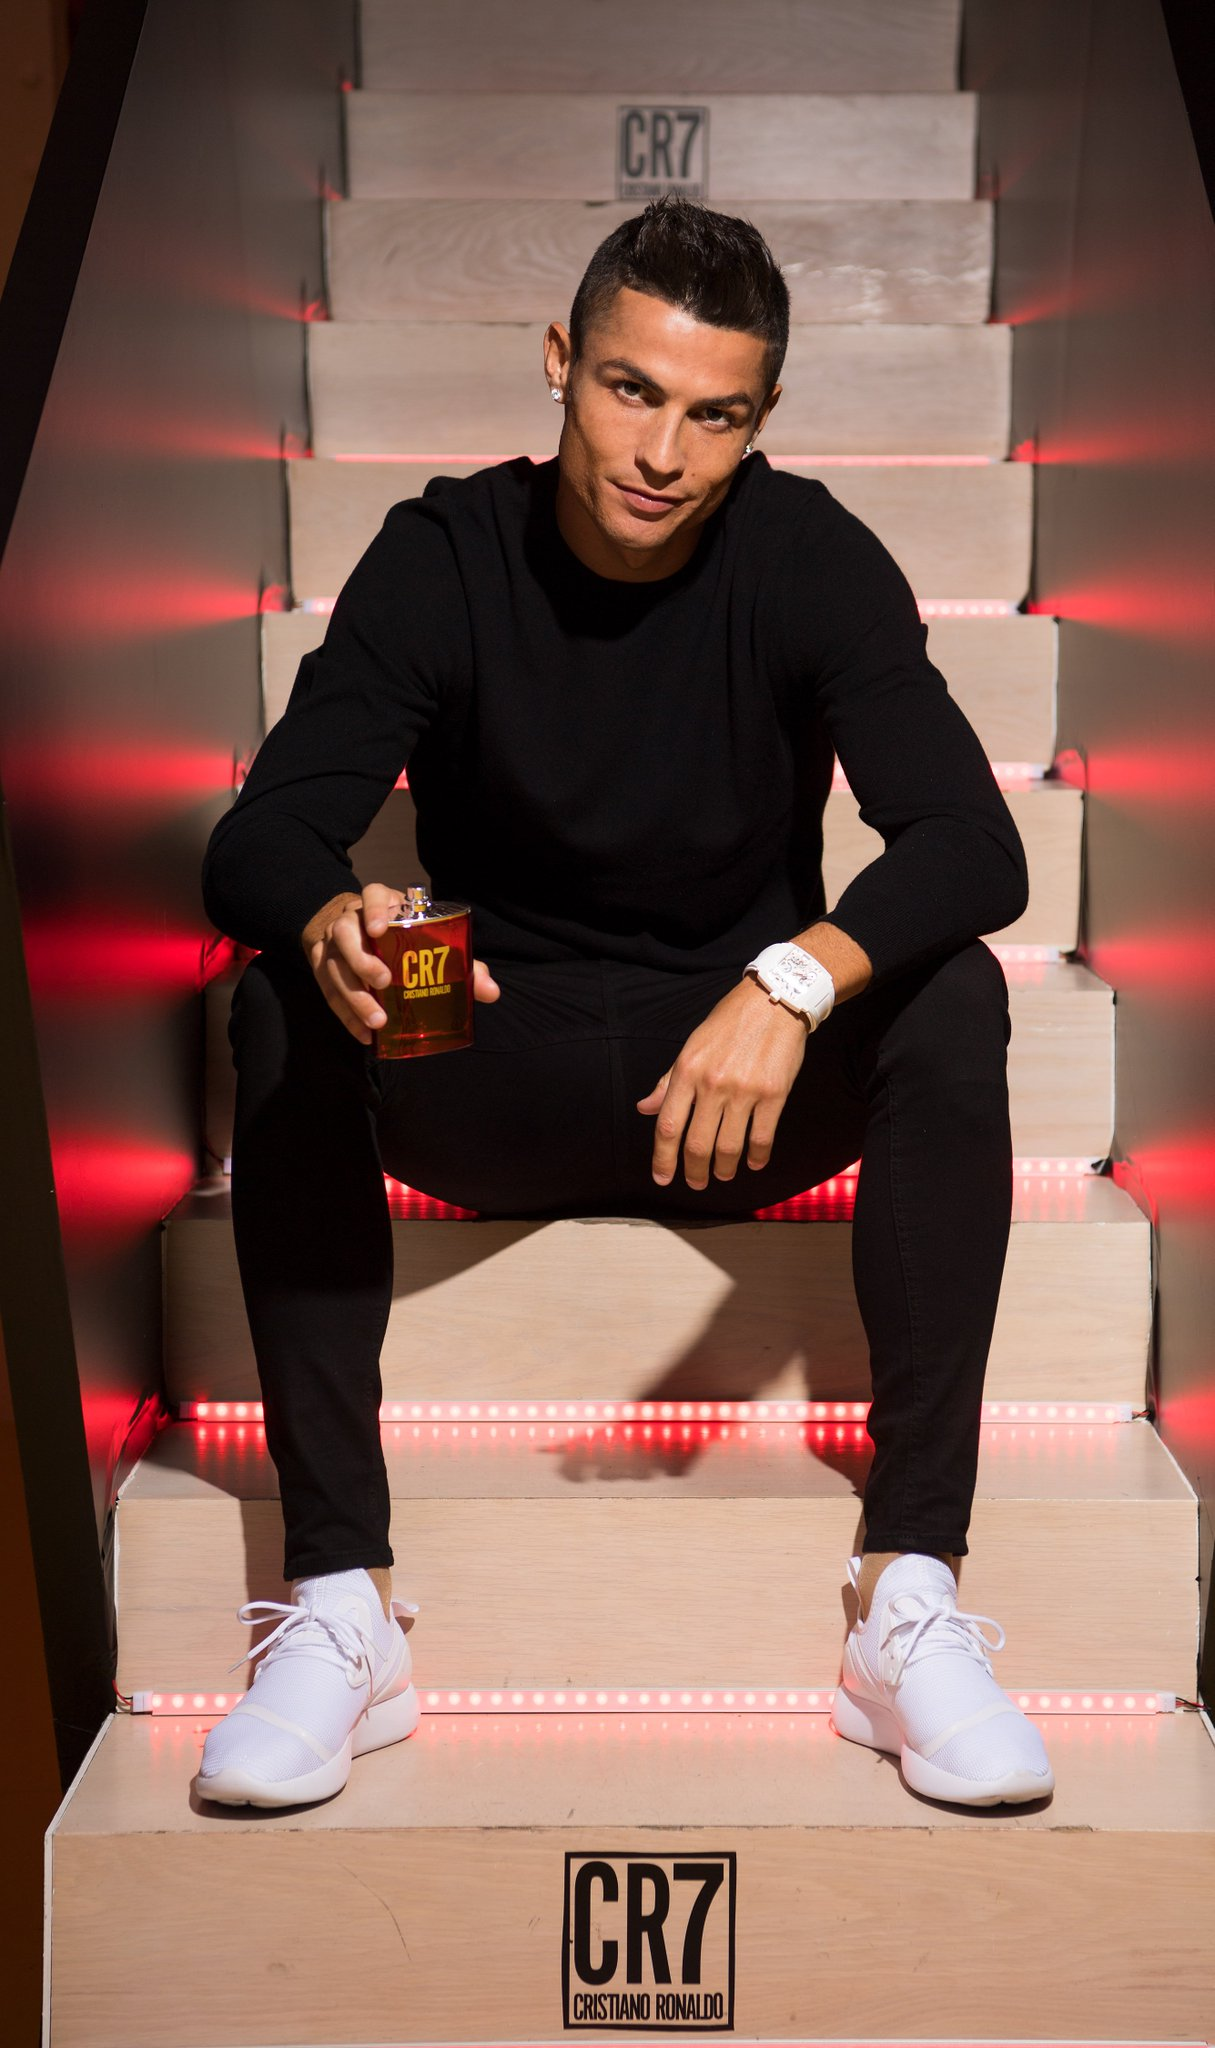 My new #CR7Fragrance one of my favourite presents to give my friends and family this Christmas! �� https://t.co/2rAwJXQVCI